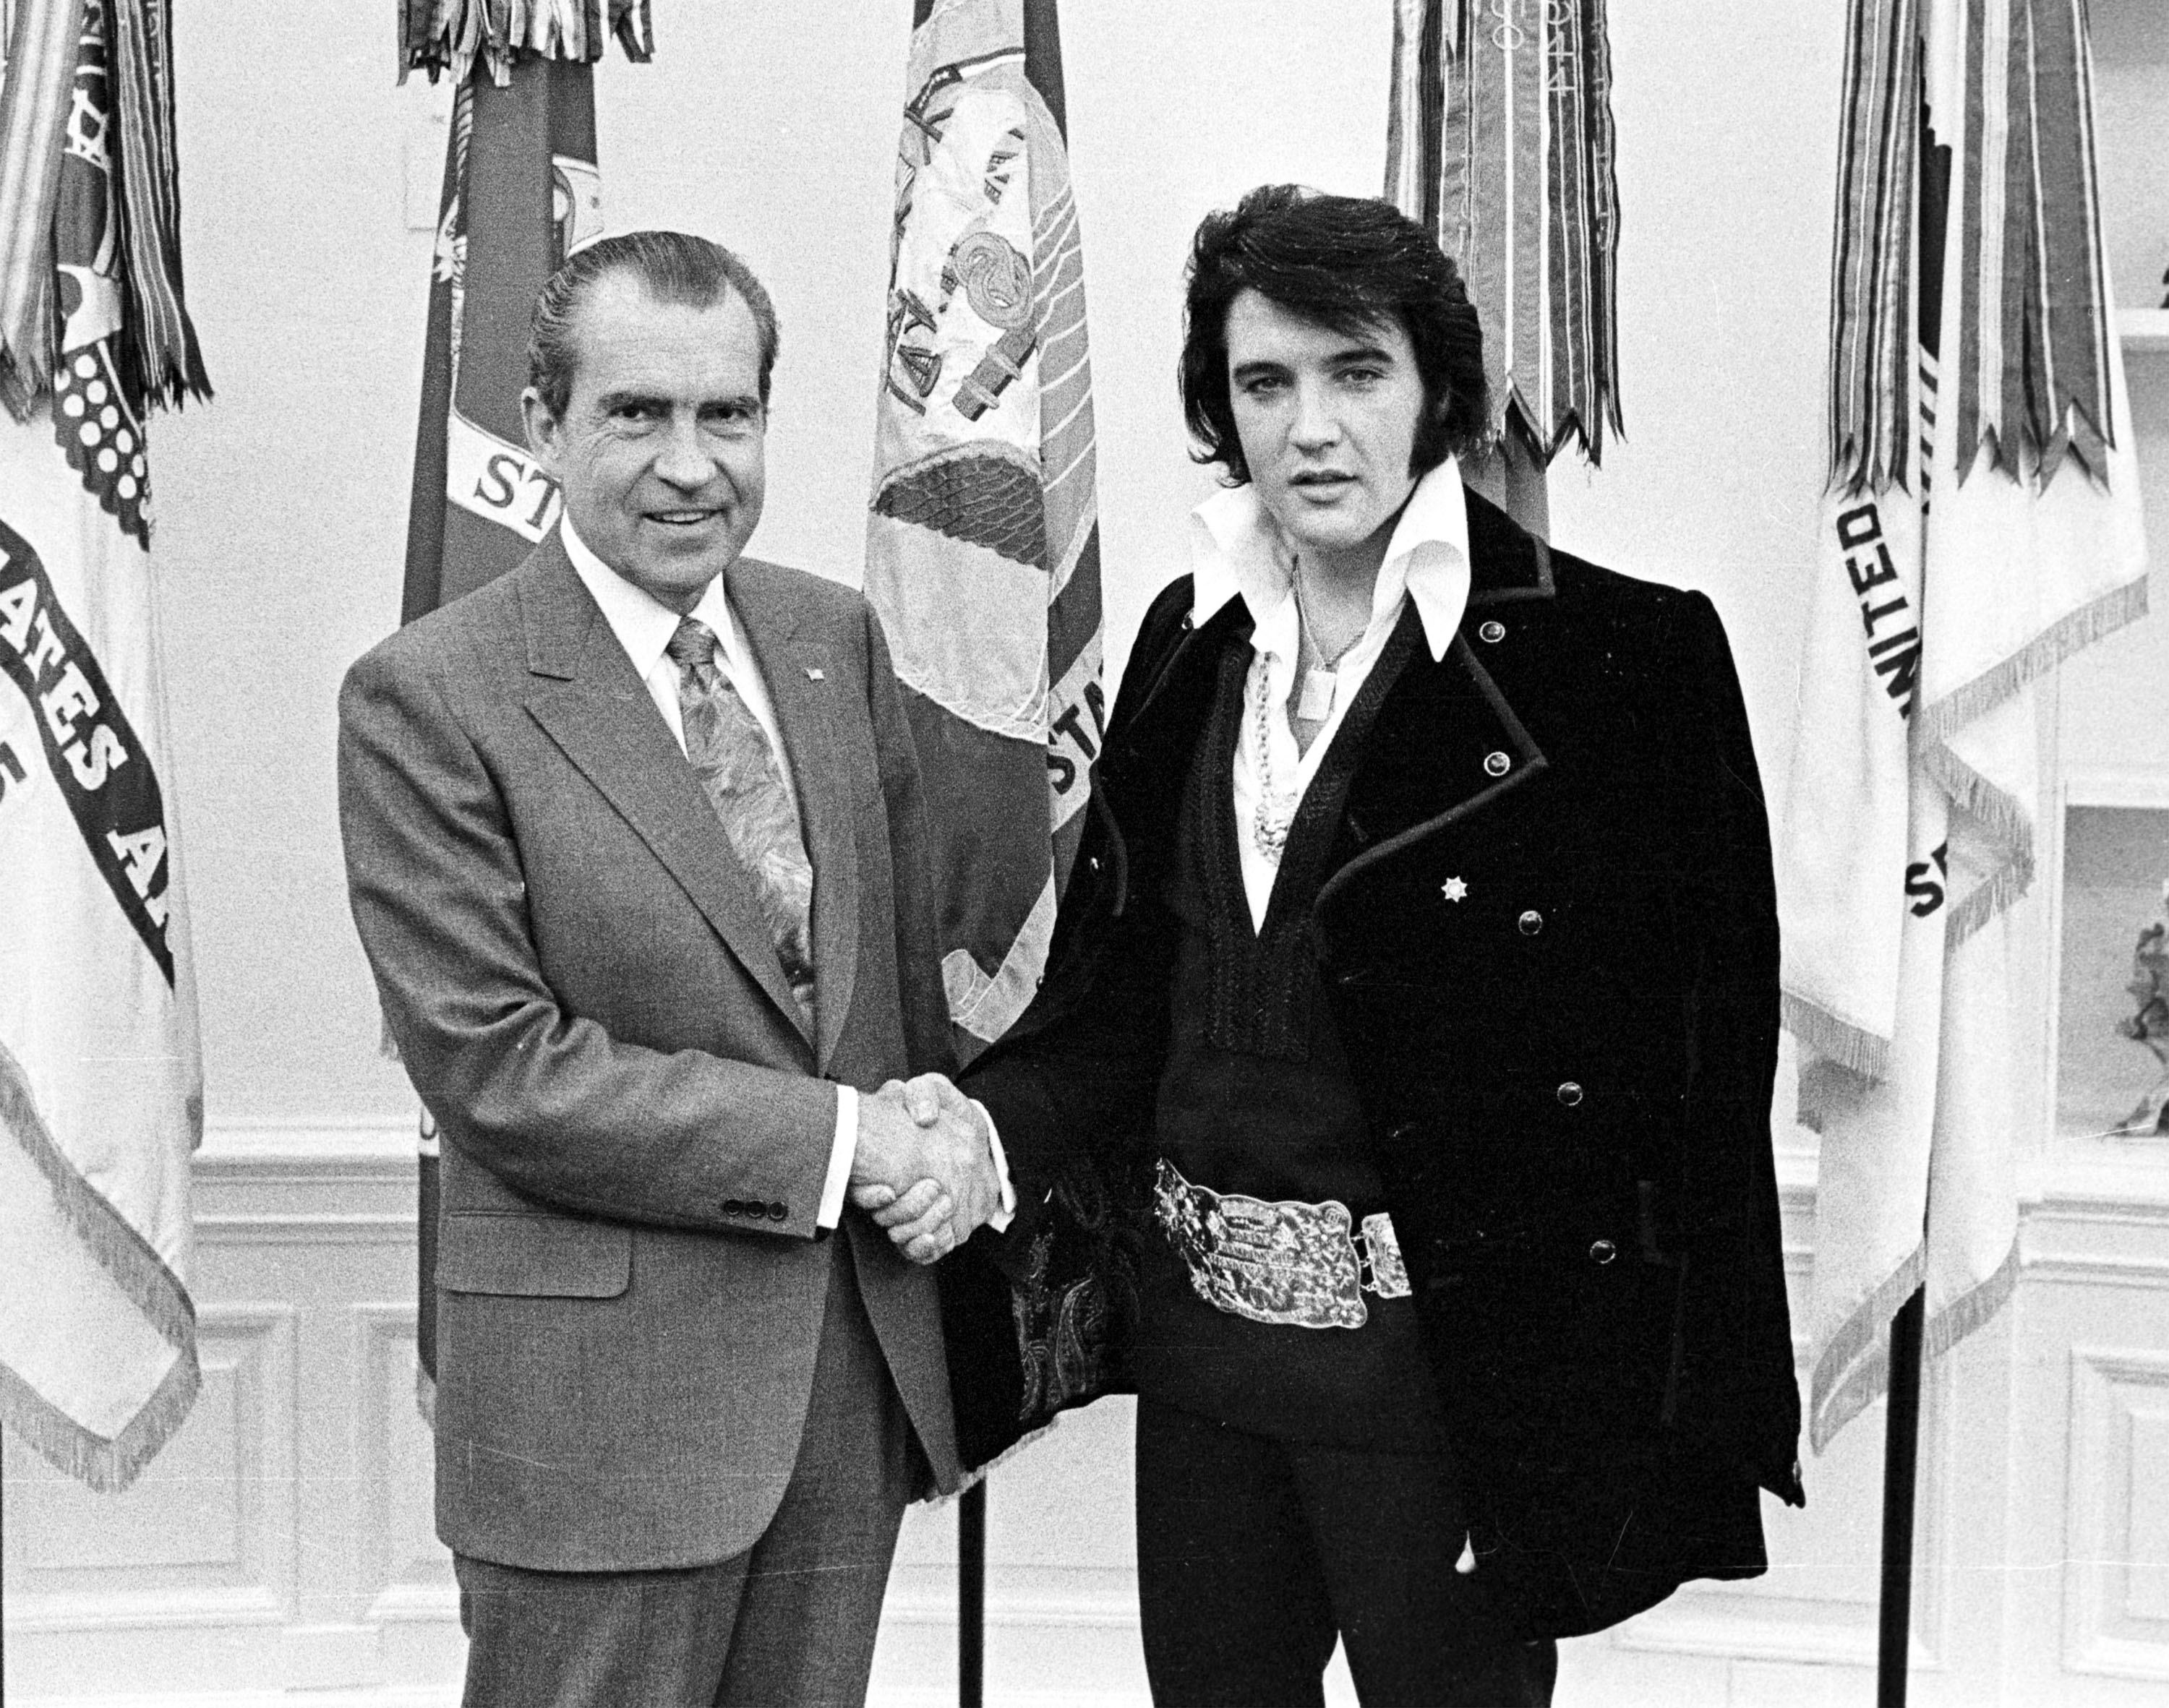 """The 1970 historic meet of """"The King of Rock and Roll"""" Elvis Presley and President Richard Nixon. 